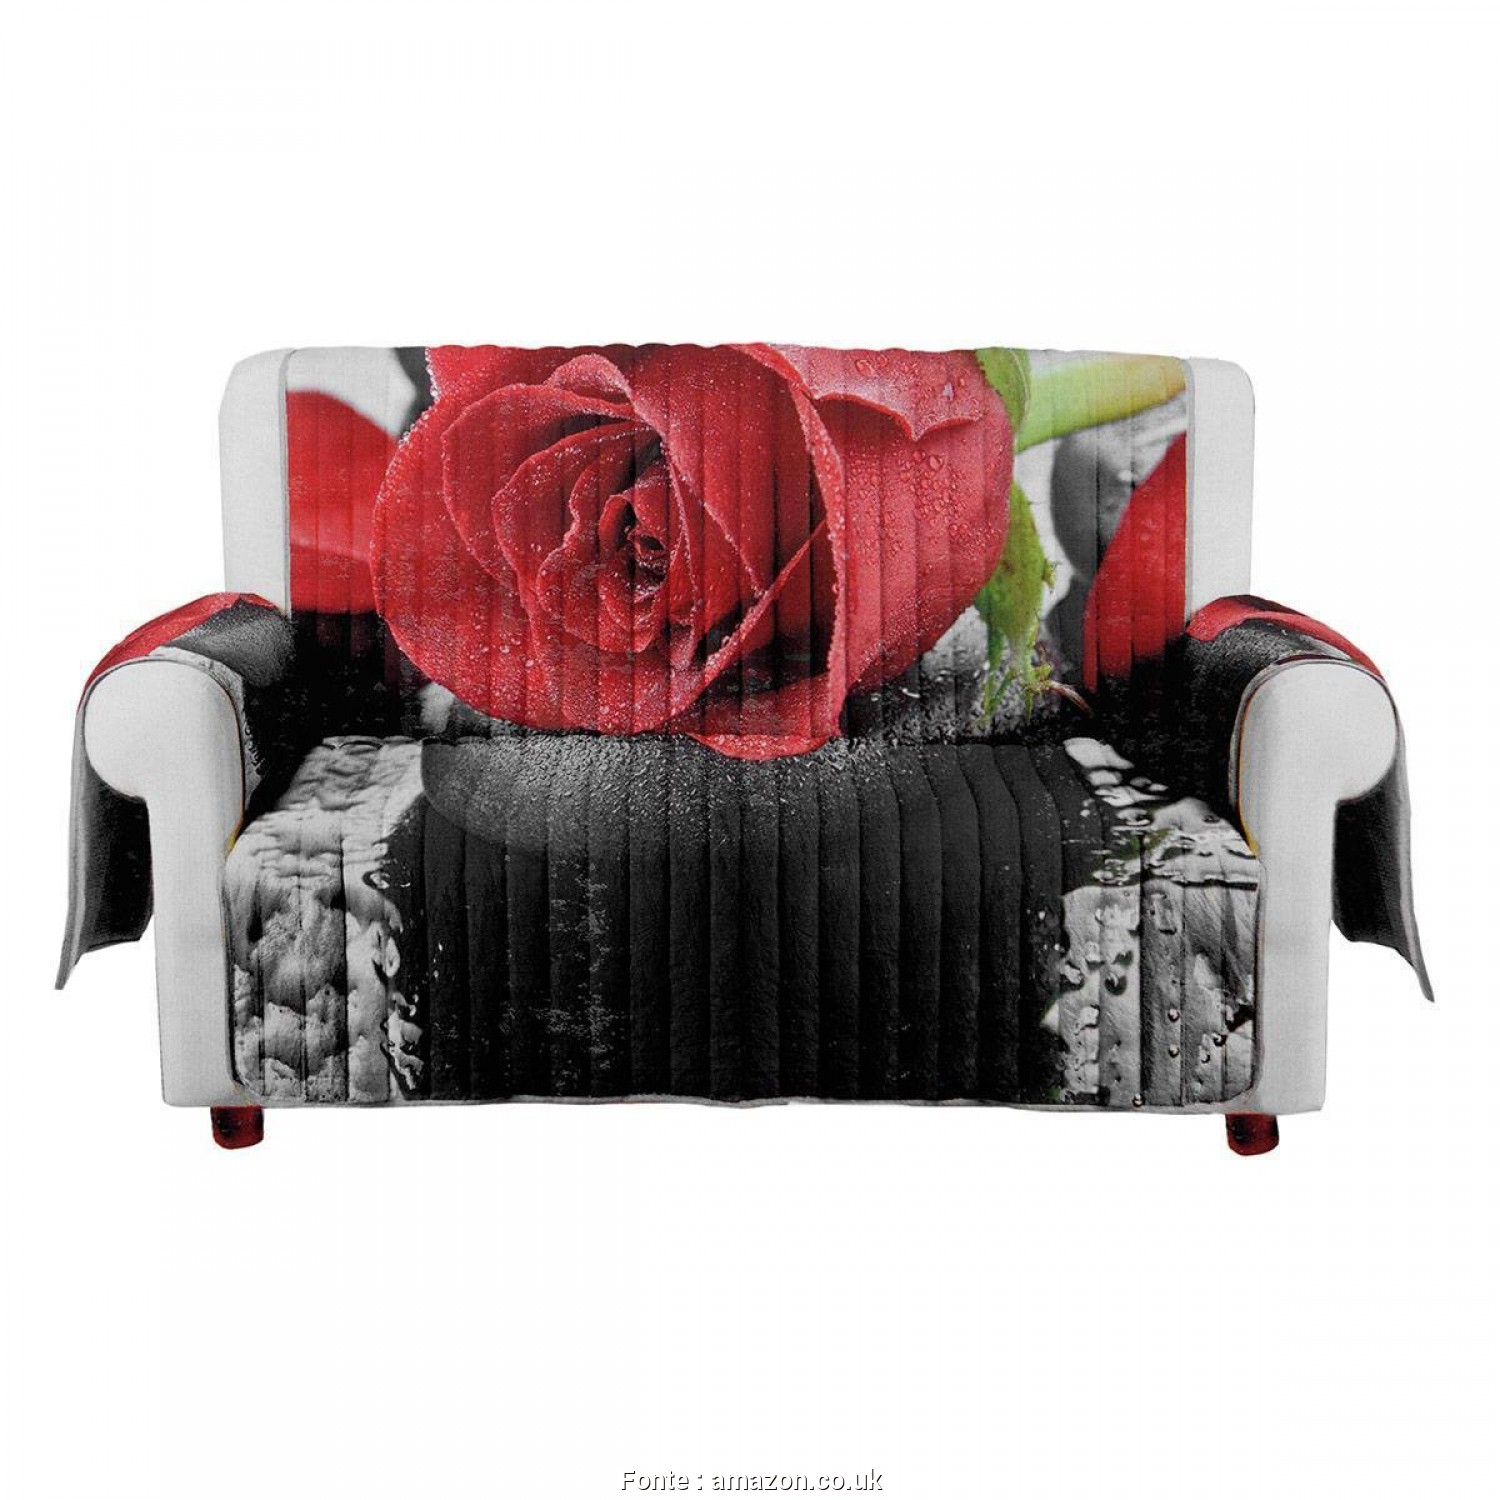 Amazon Salvadivano, Ideale Quilted Sofa 3 Seater Pink Of Marta Marzotto Salvadivano Q496: Amazon.Co.Uk: Kitchen & Home